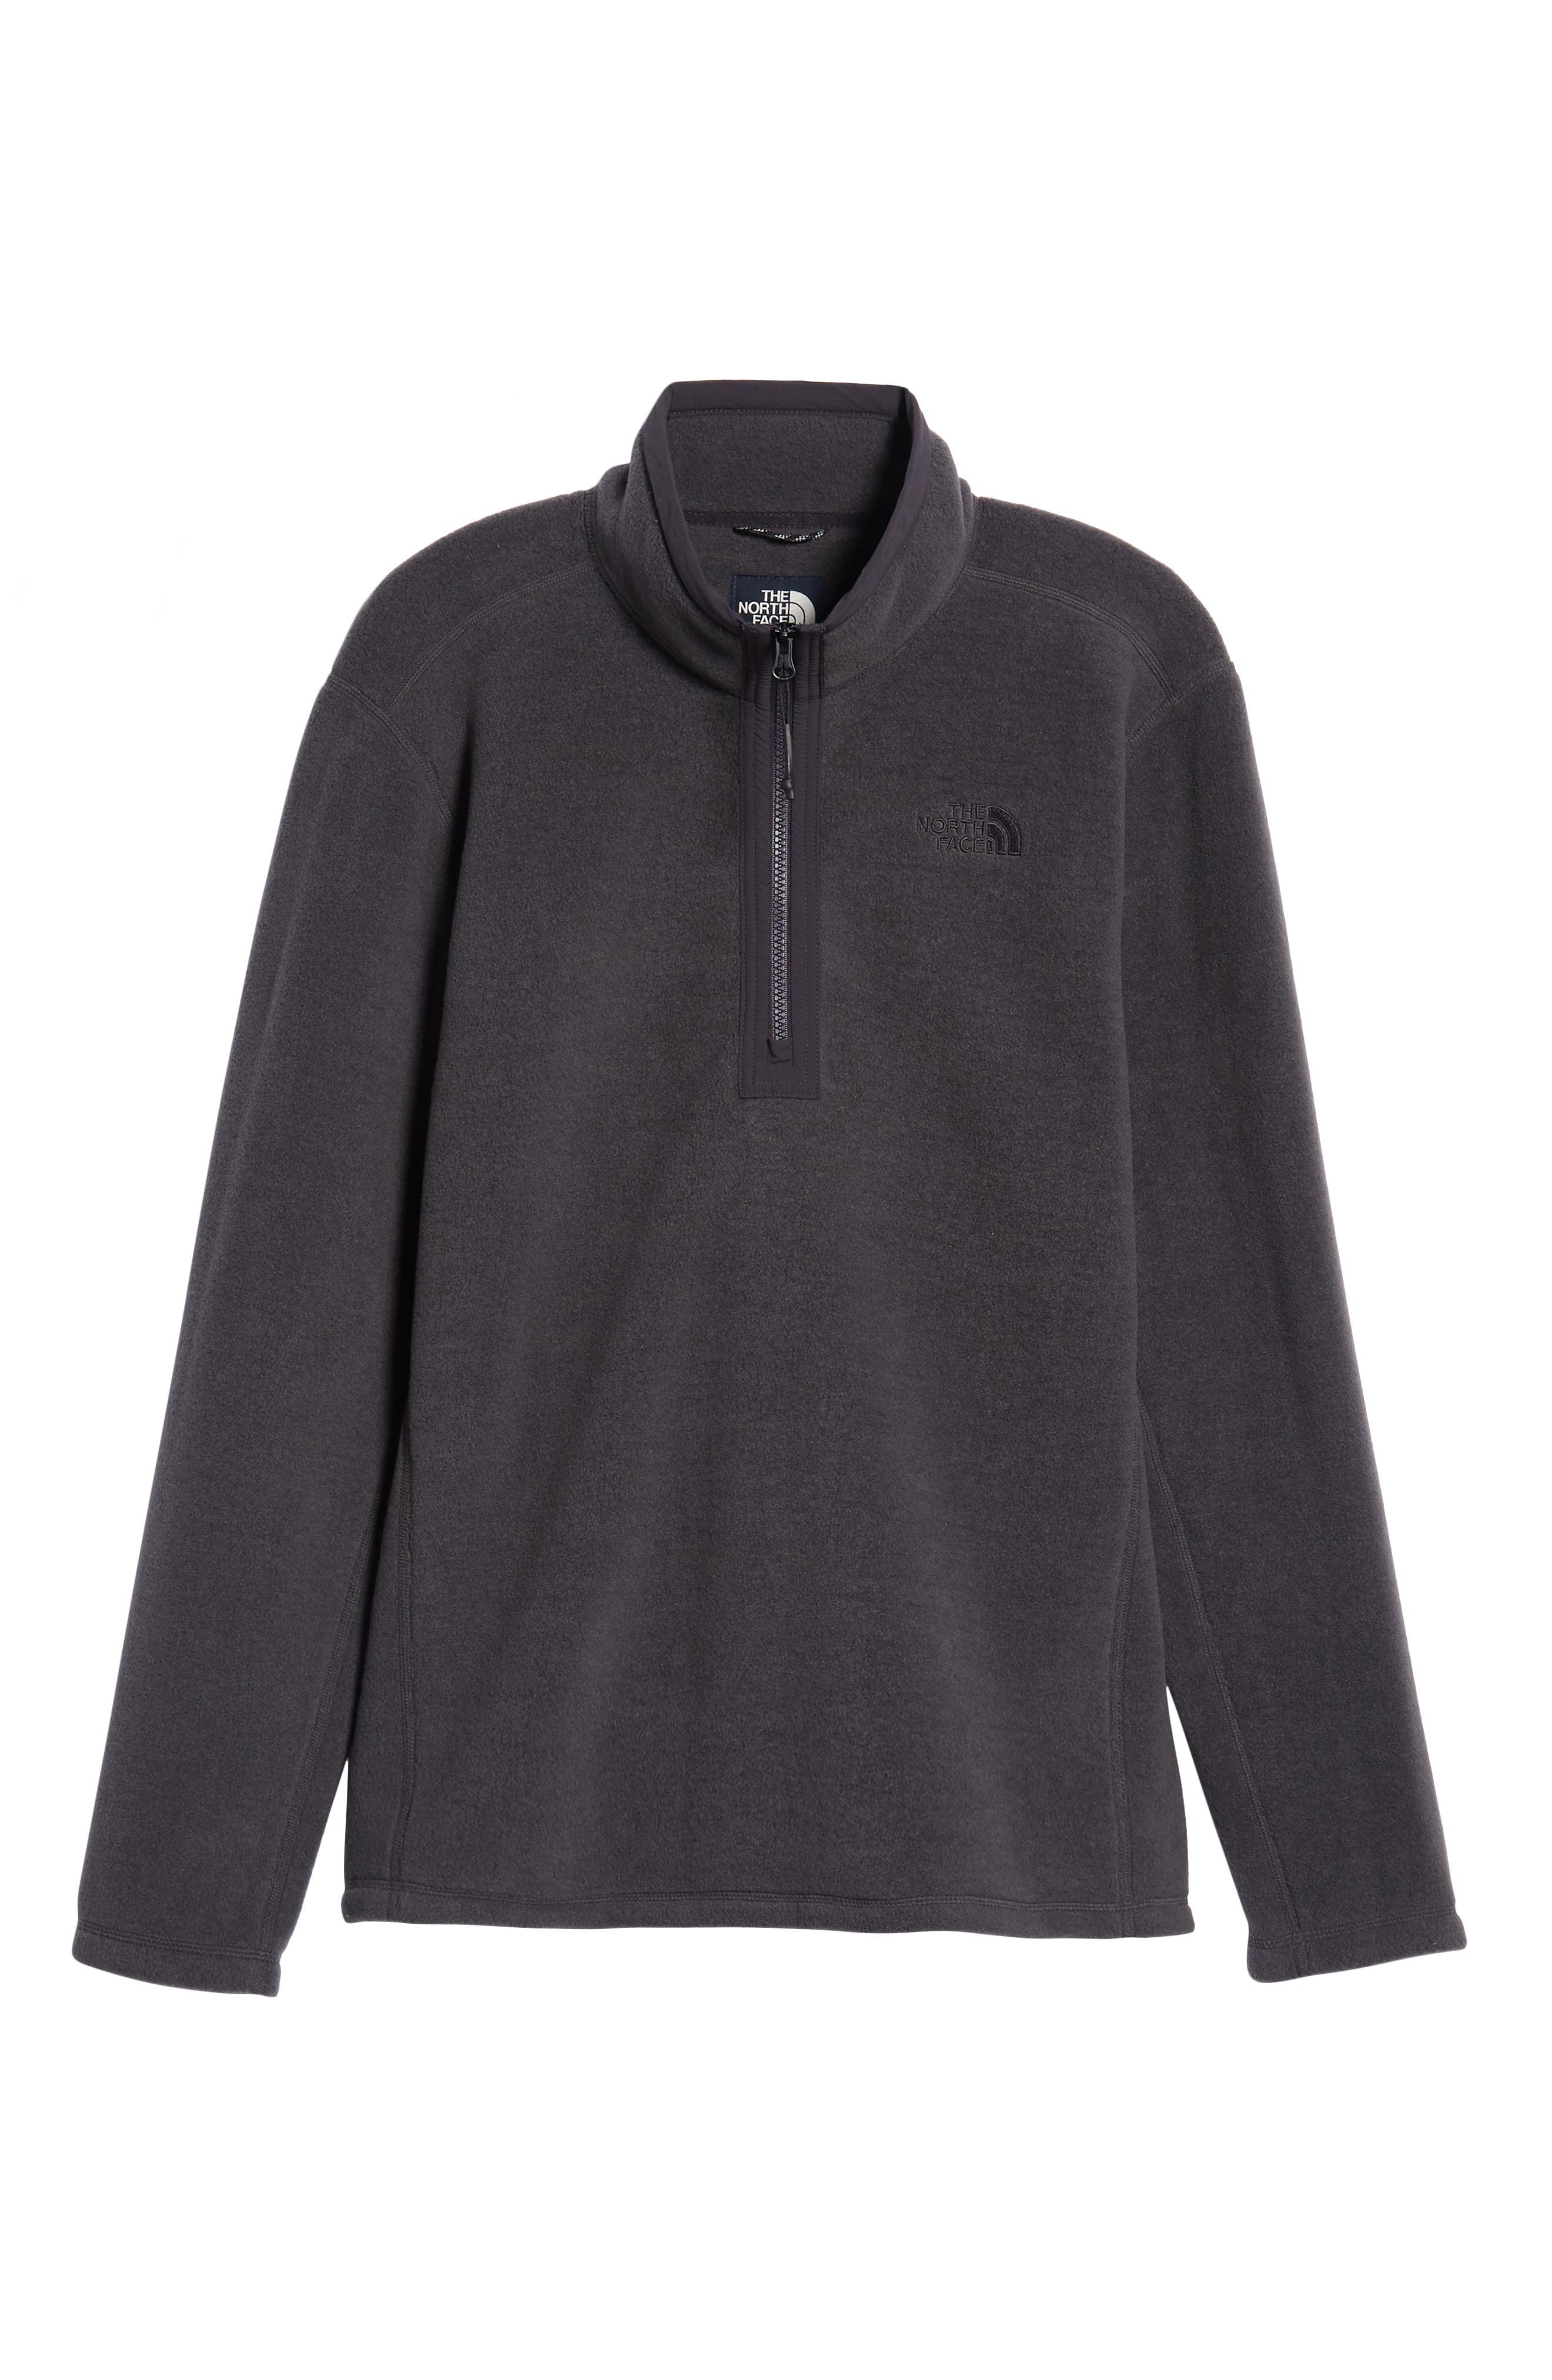 Pyrite Fleece Quarter Zip Pullover,                             Alternate thumbnail 6, color,                             TNF DARK GREY HEATHER